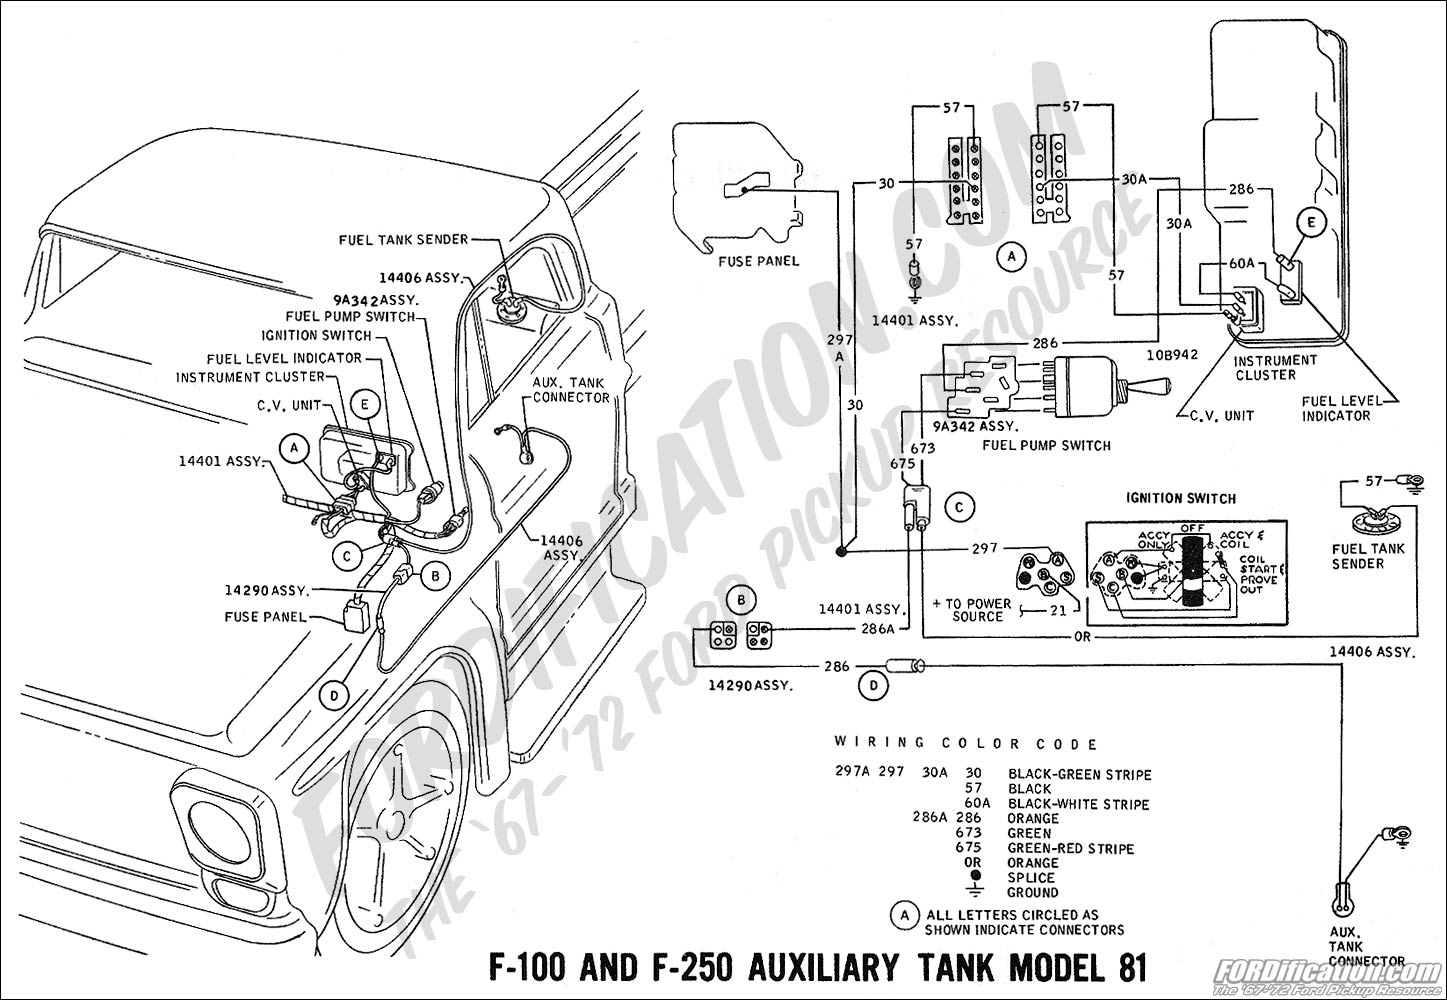 1979 Ford Thunderbird Fuse Box : 30 Wiring Diagram Images